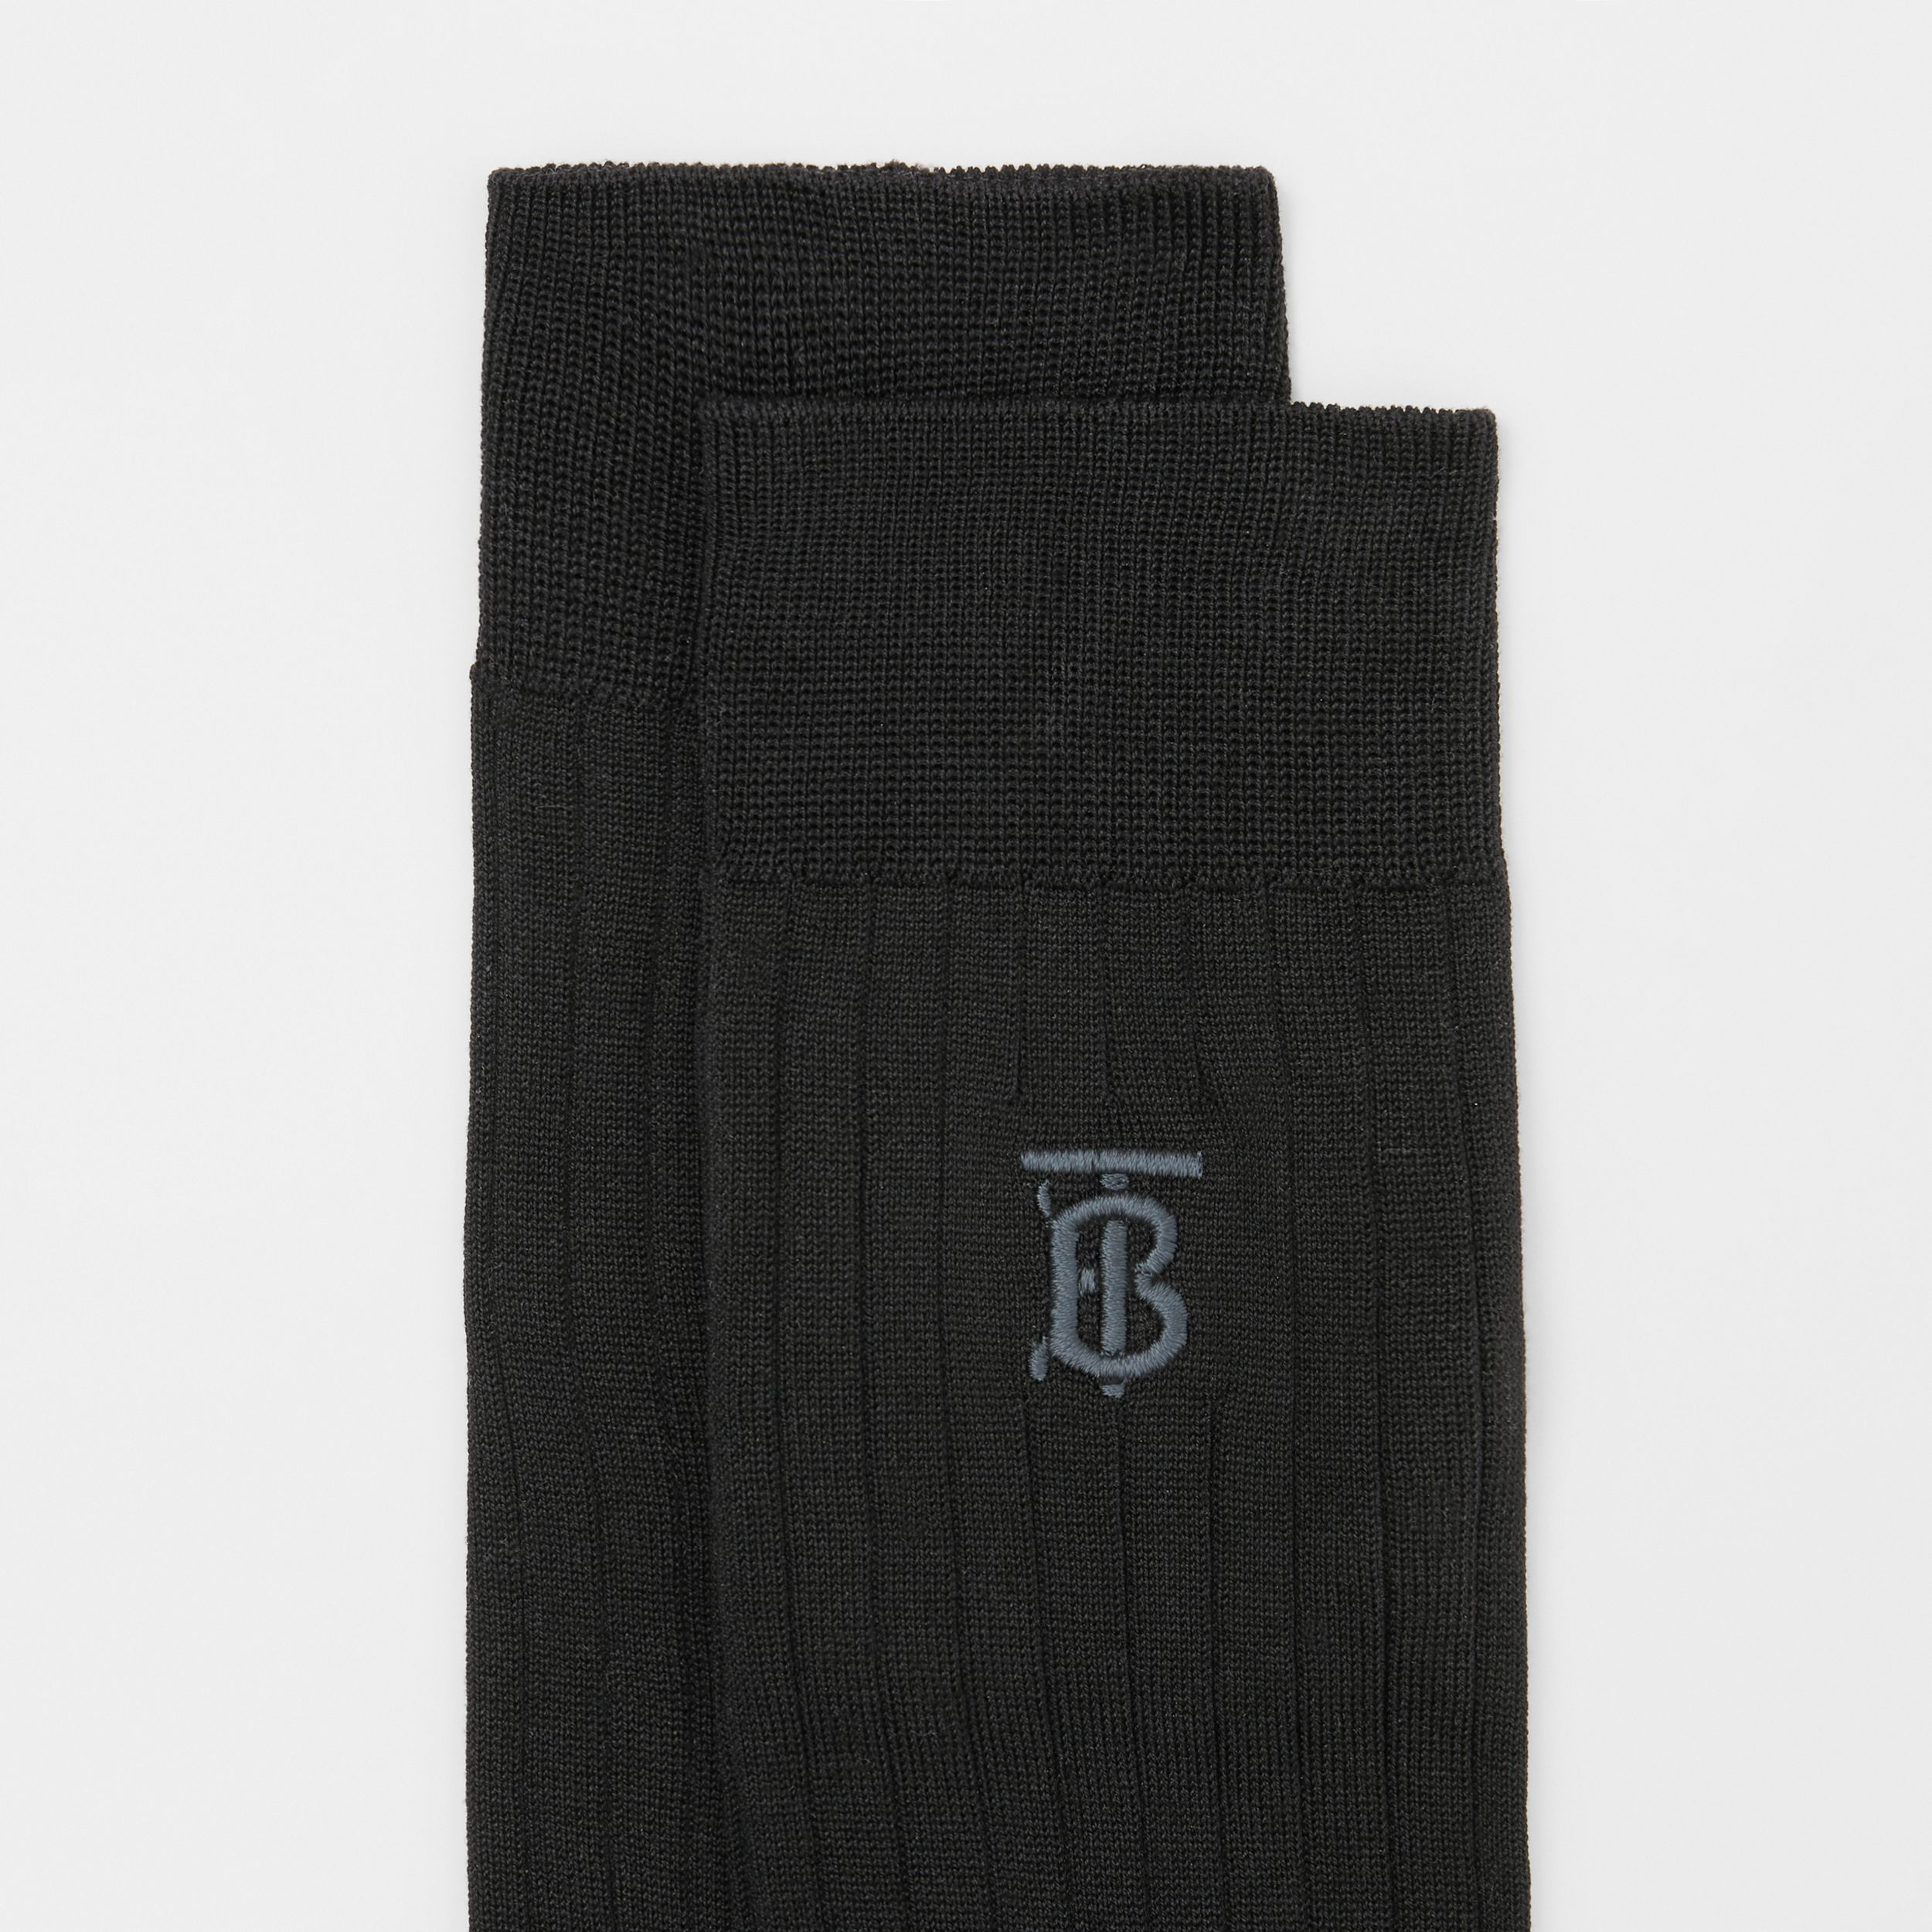 Monogram Motif Cotton Blend Socks in Black | Burberry - 2